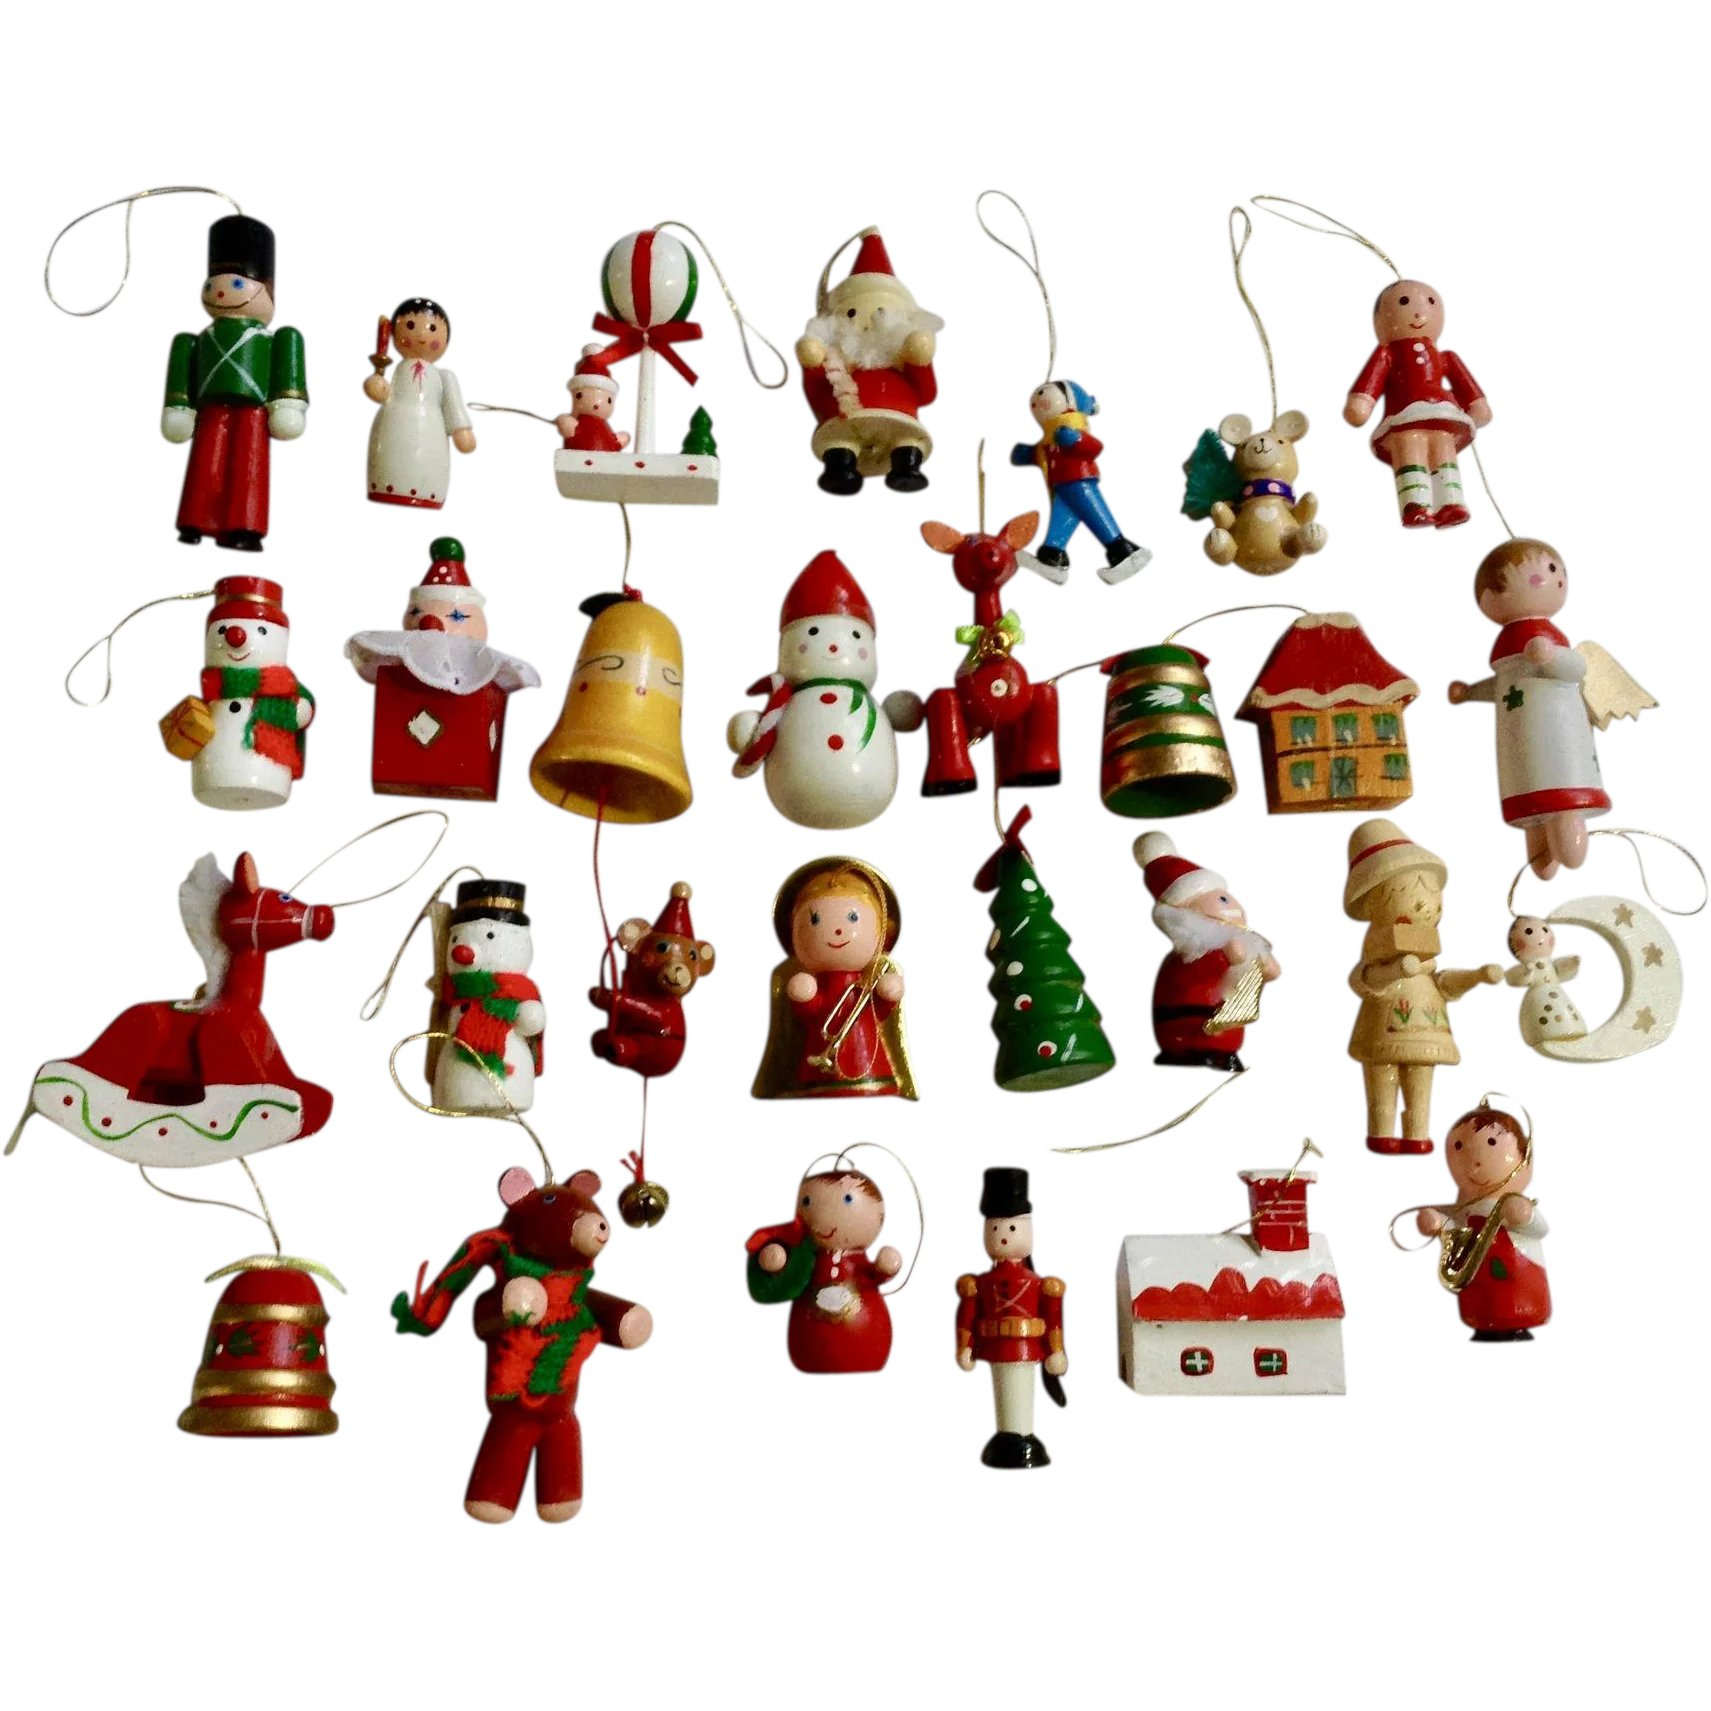 Vintage Wooden Christmas Tree Ornaments And Decorations Angels Horses Gumgumfuninthesun Ruby Lane